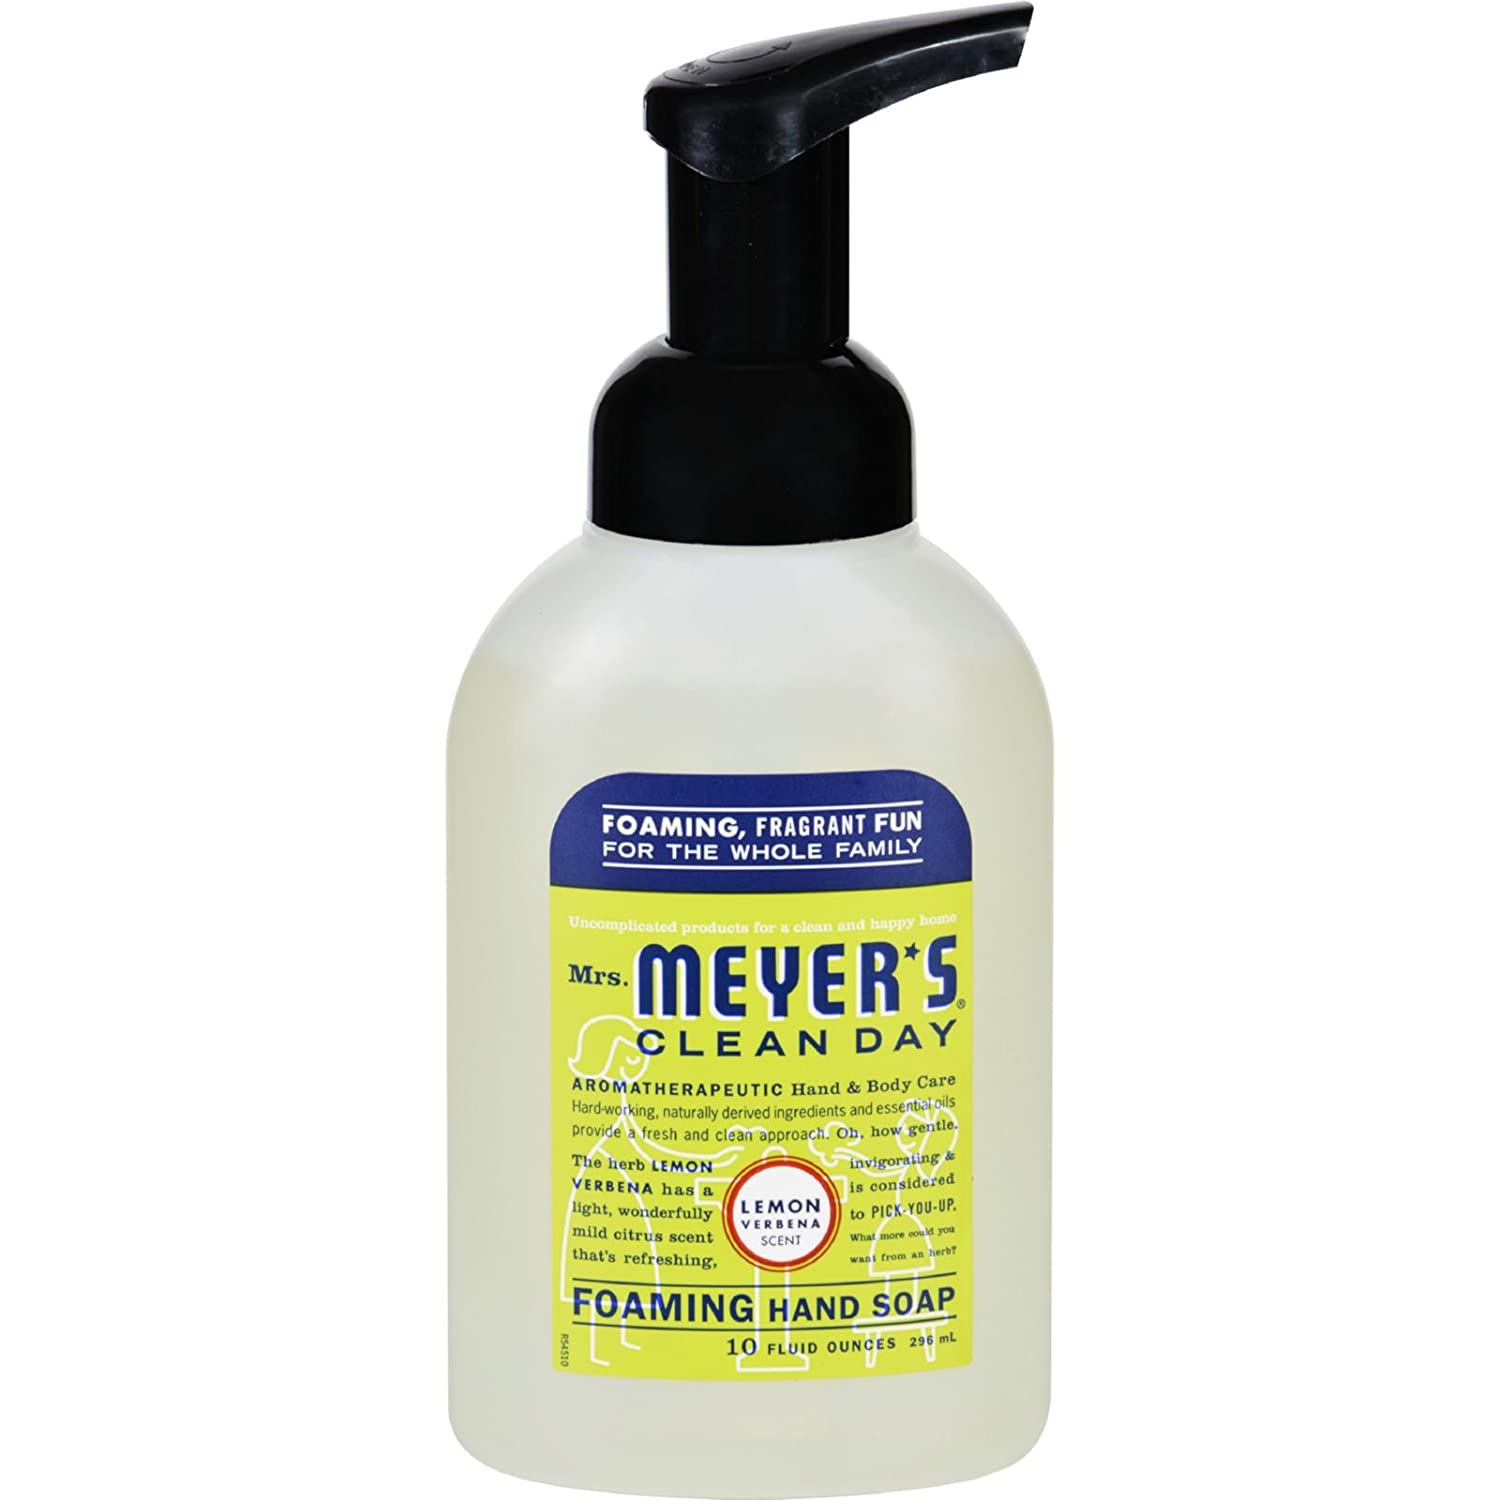 Mrs. Meyers Foaming Hand Soap - Lemon Verbena - Case of 6-10 fl oz